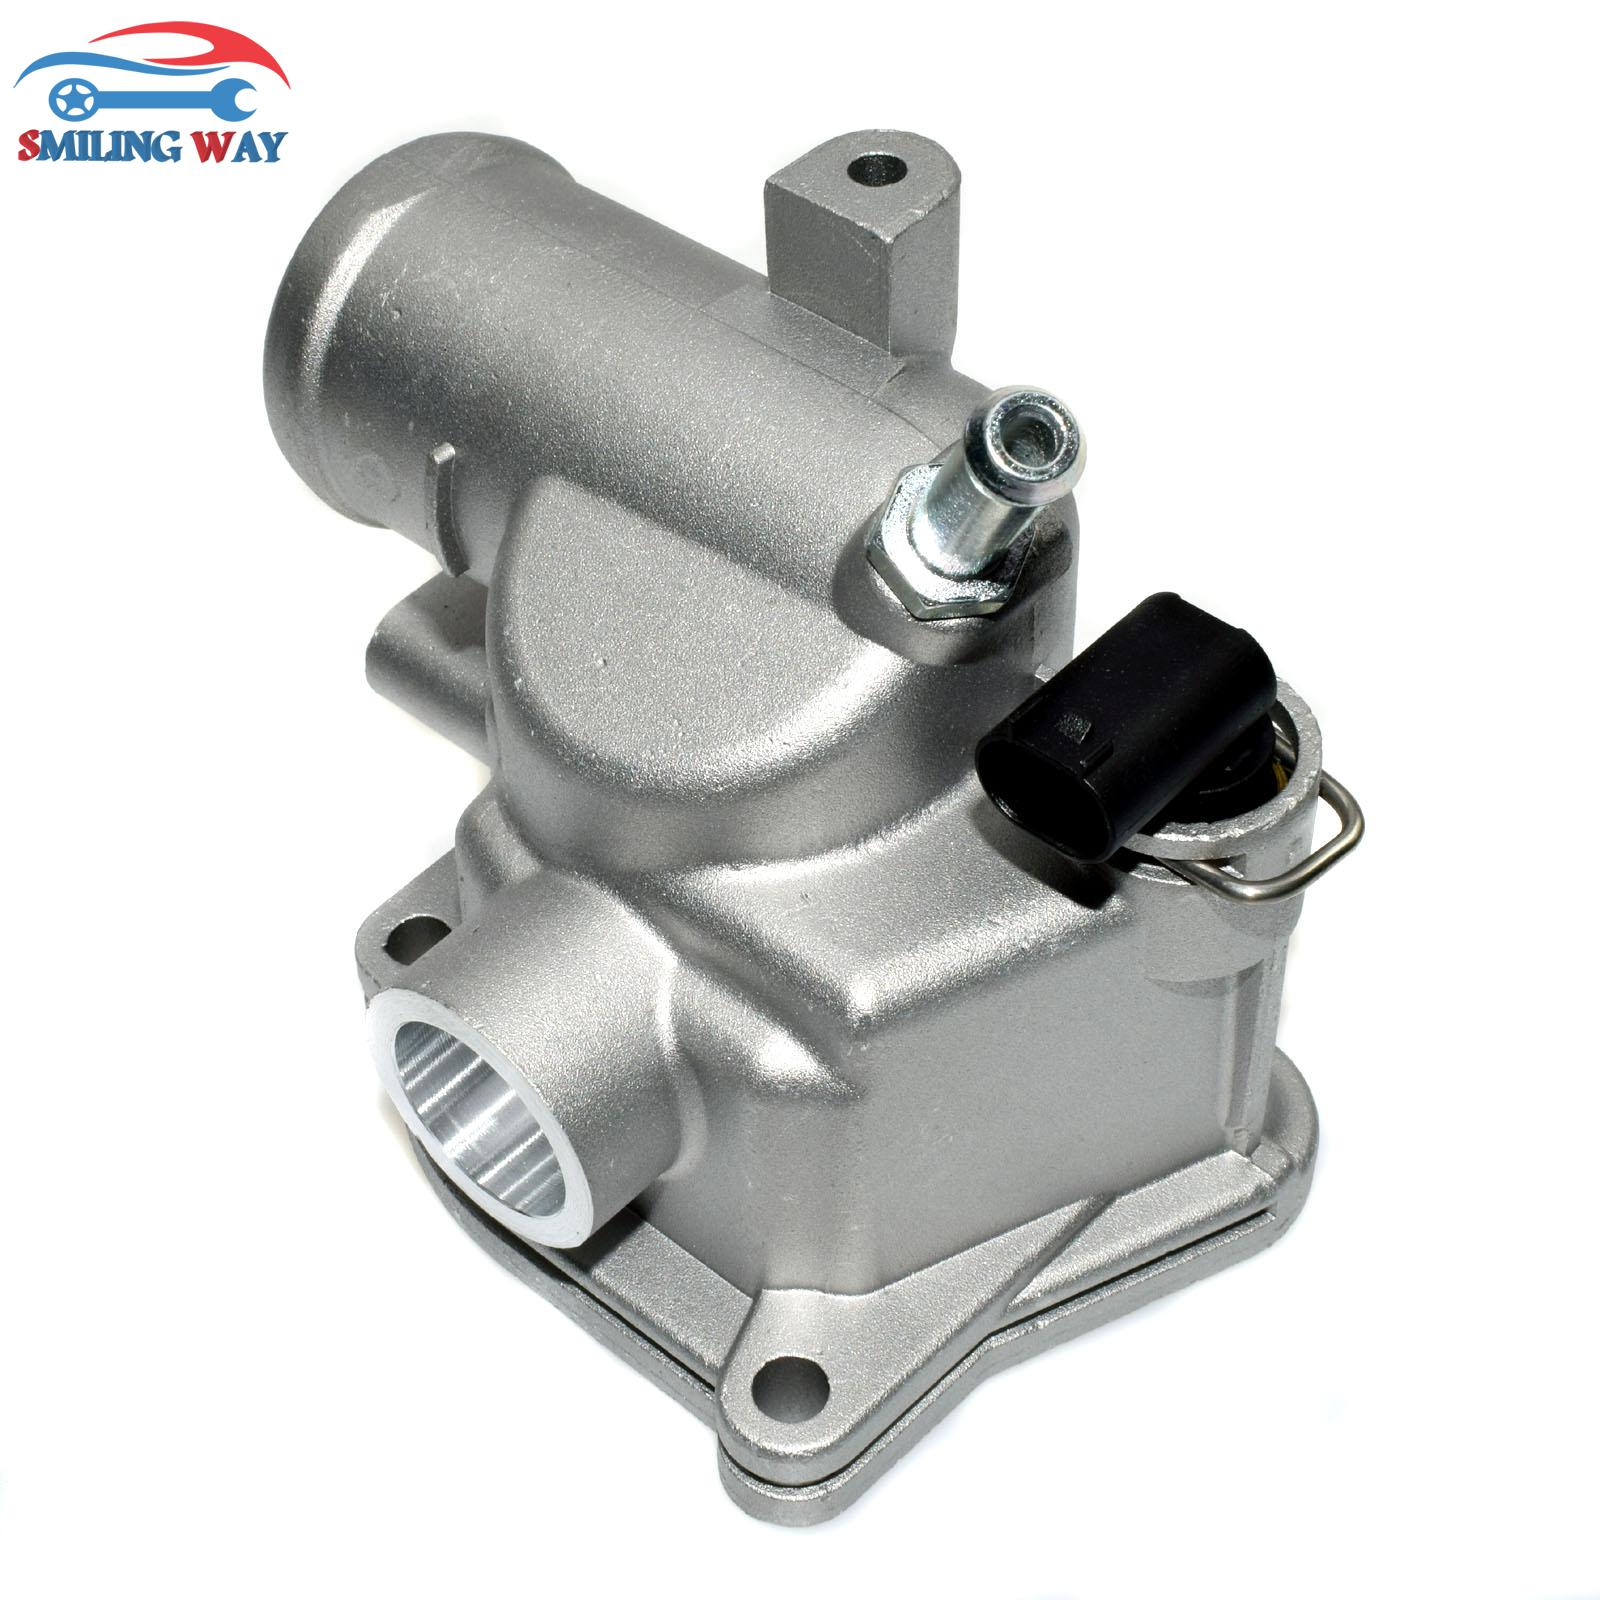 smiling way engine coolant thermostat for mercedes benz w202 s202 c class e class c200 e200 c36 amg oe 6112000015 6112030075 [ 1600 x 1600 Pixel ]